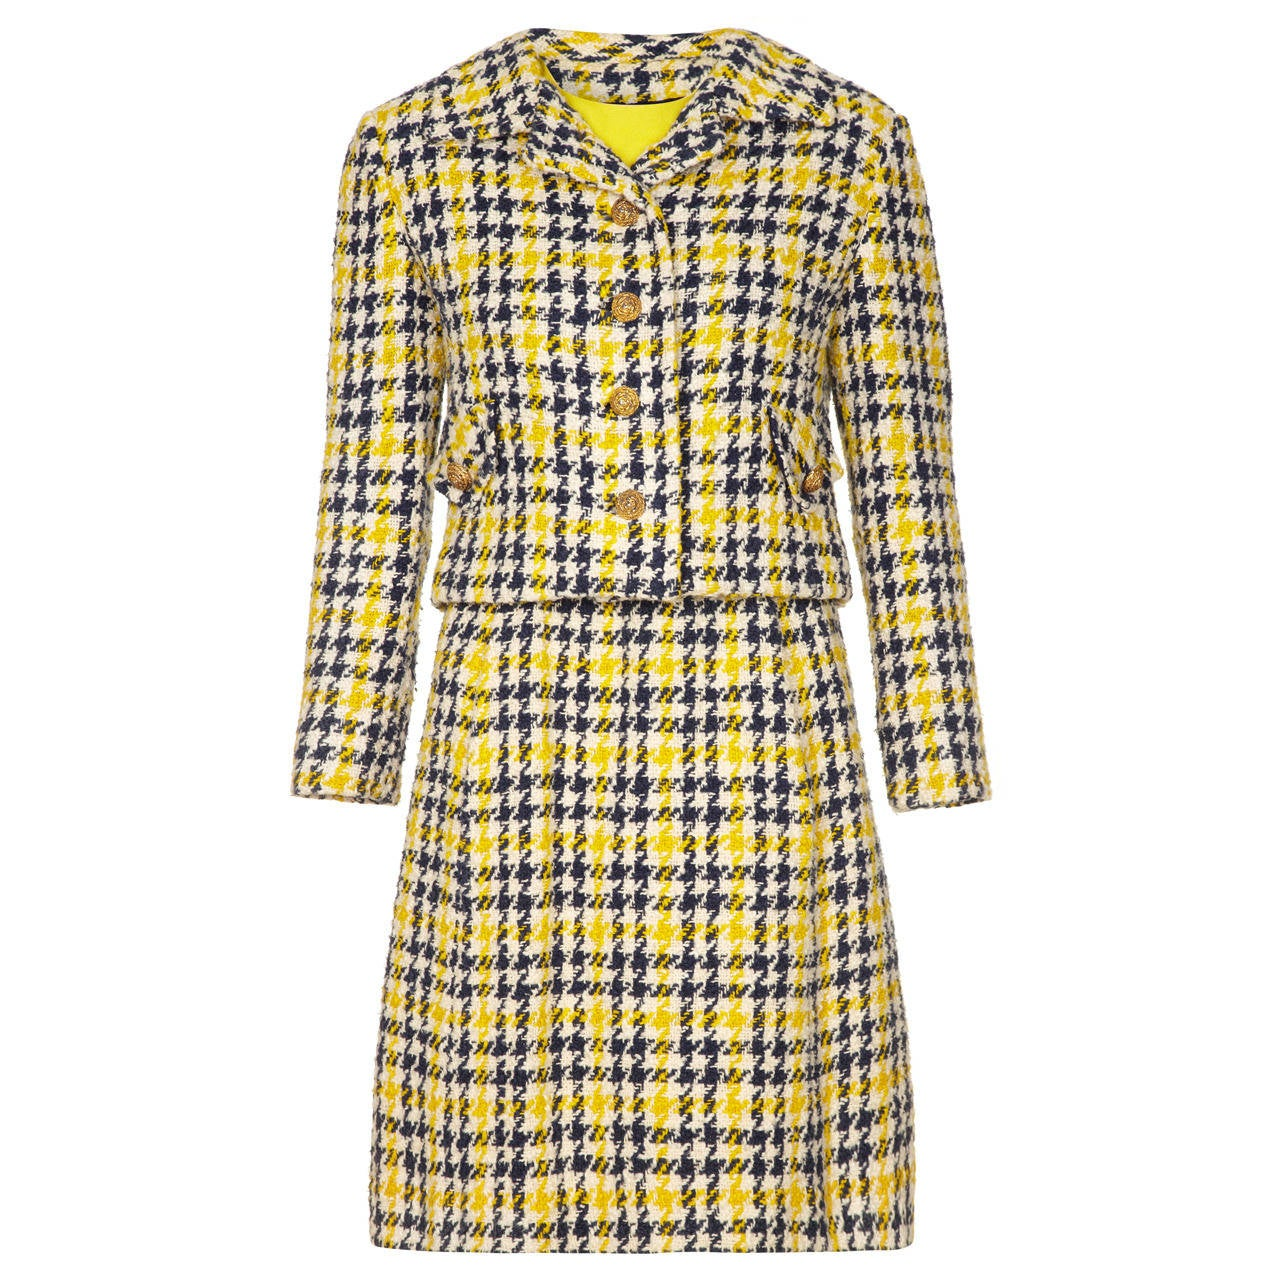 1960s Yellow & Blue Tweed Dress Suit For Sale